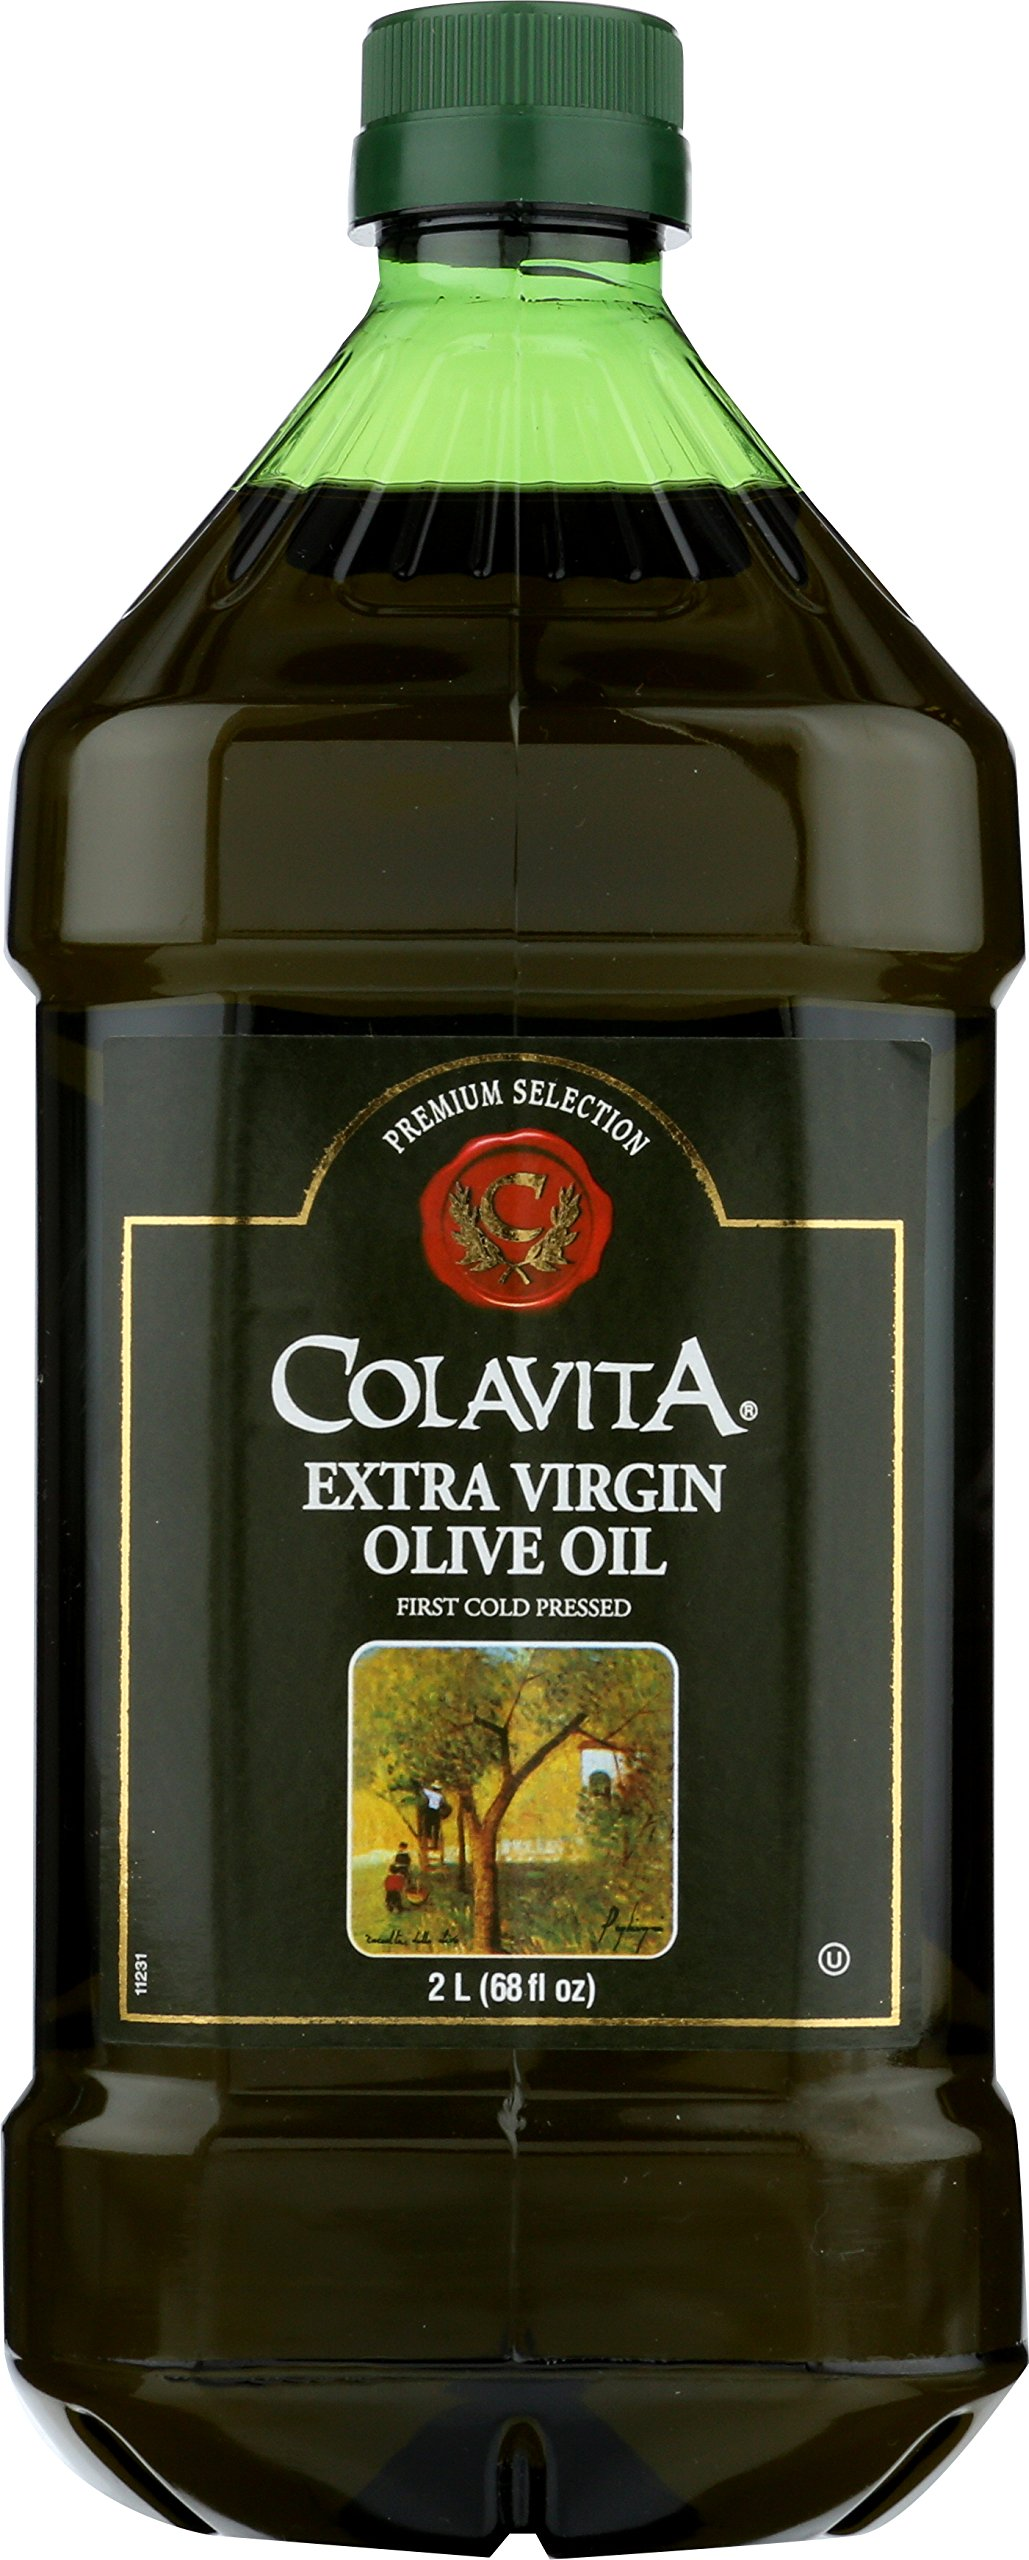 Colavita Extra Virgin Olive Oil, First Cold Pressed, (2 Liters) 68 Fl Oz (Pack of 1) by Colavita